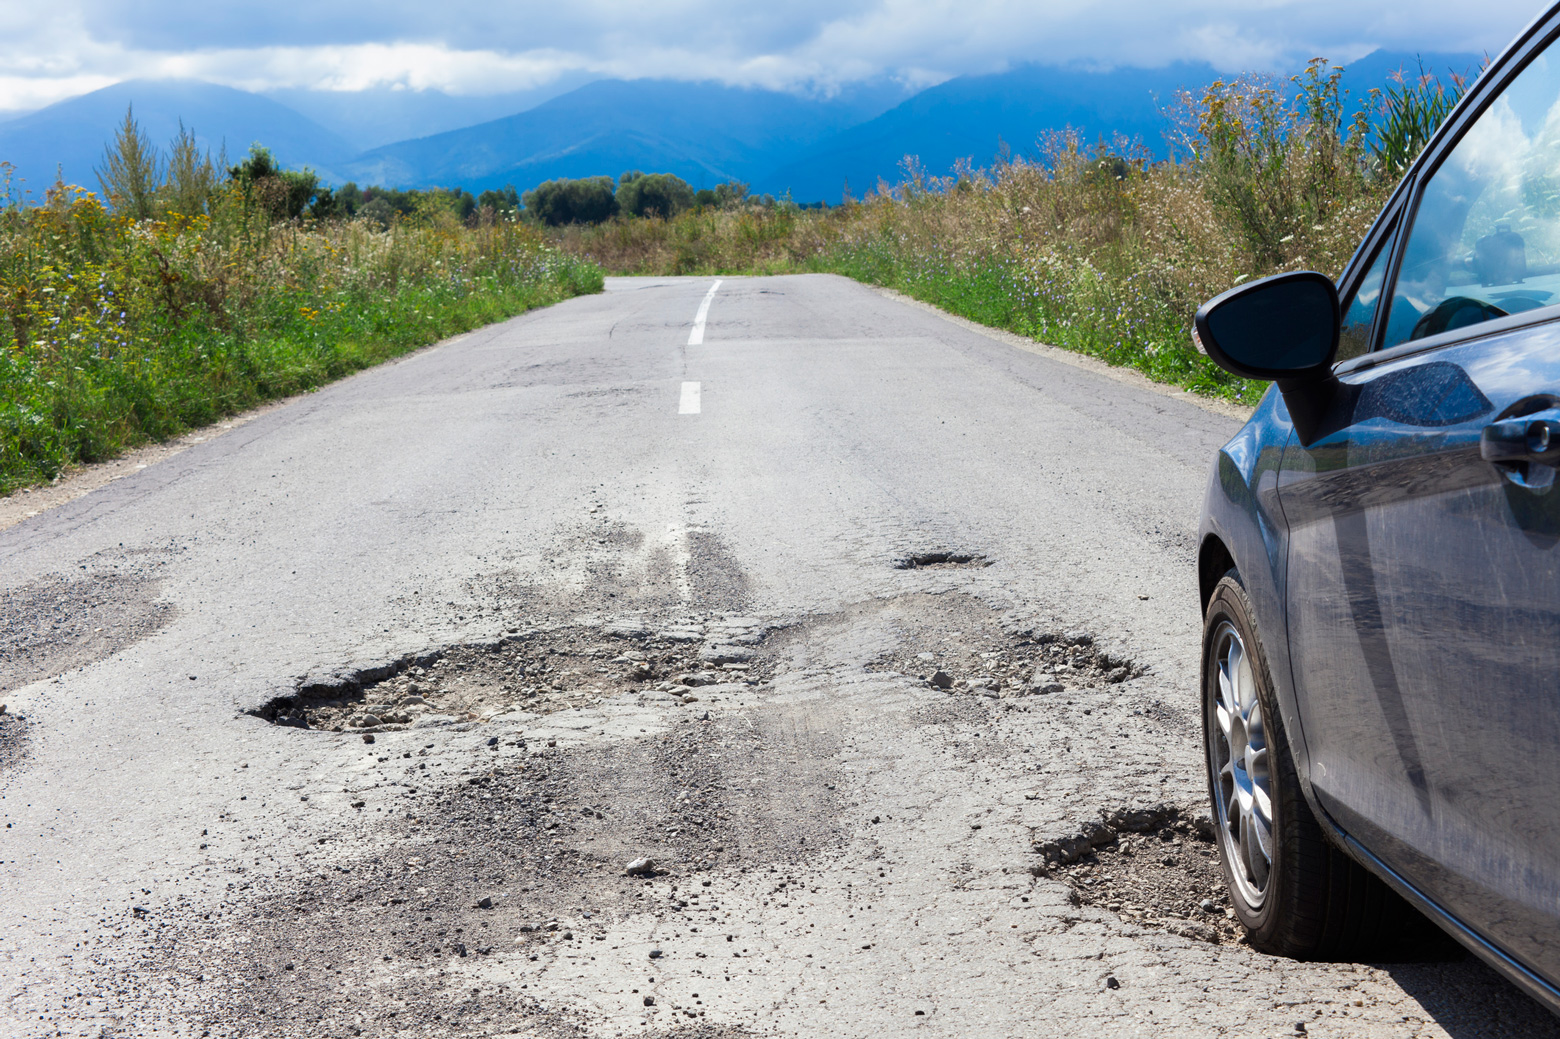 A car drives through potholes in the road